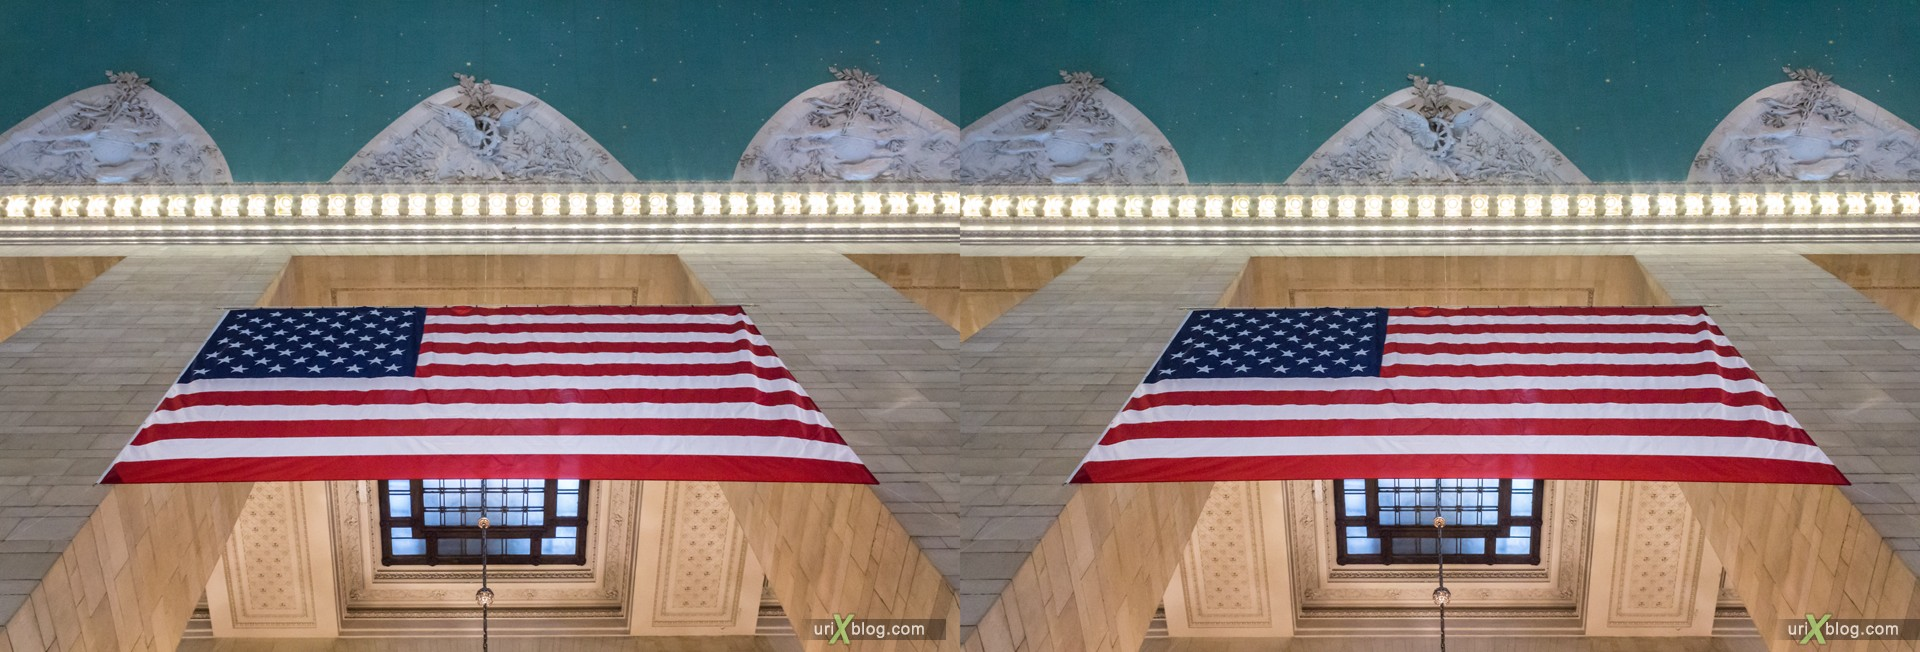 2013, Grand Central Terminal, NYC, New York City, USA, 3D, stereo pair, cross-eyed, crossview, cross view stereo pair, stereoscopic